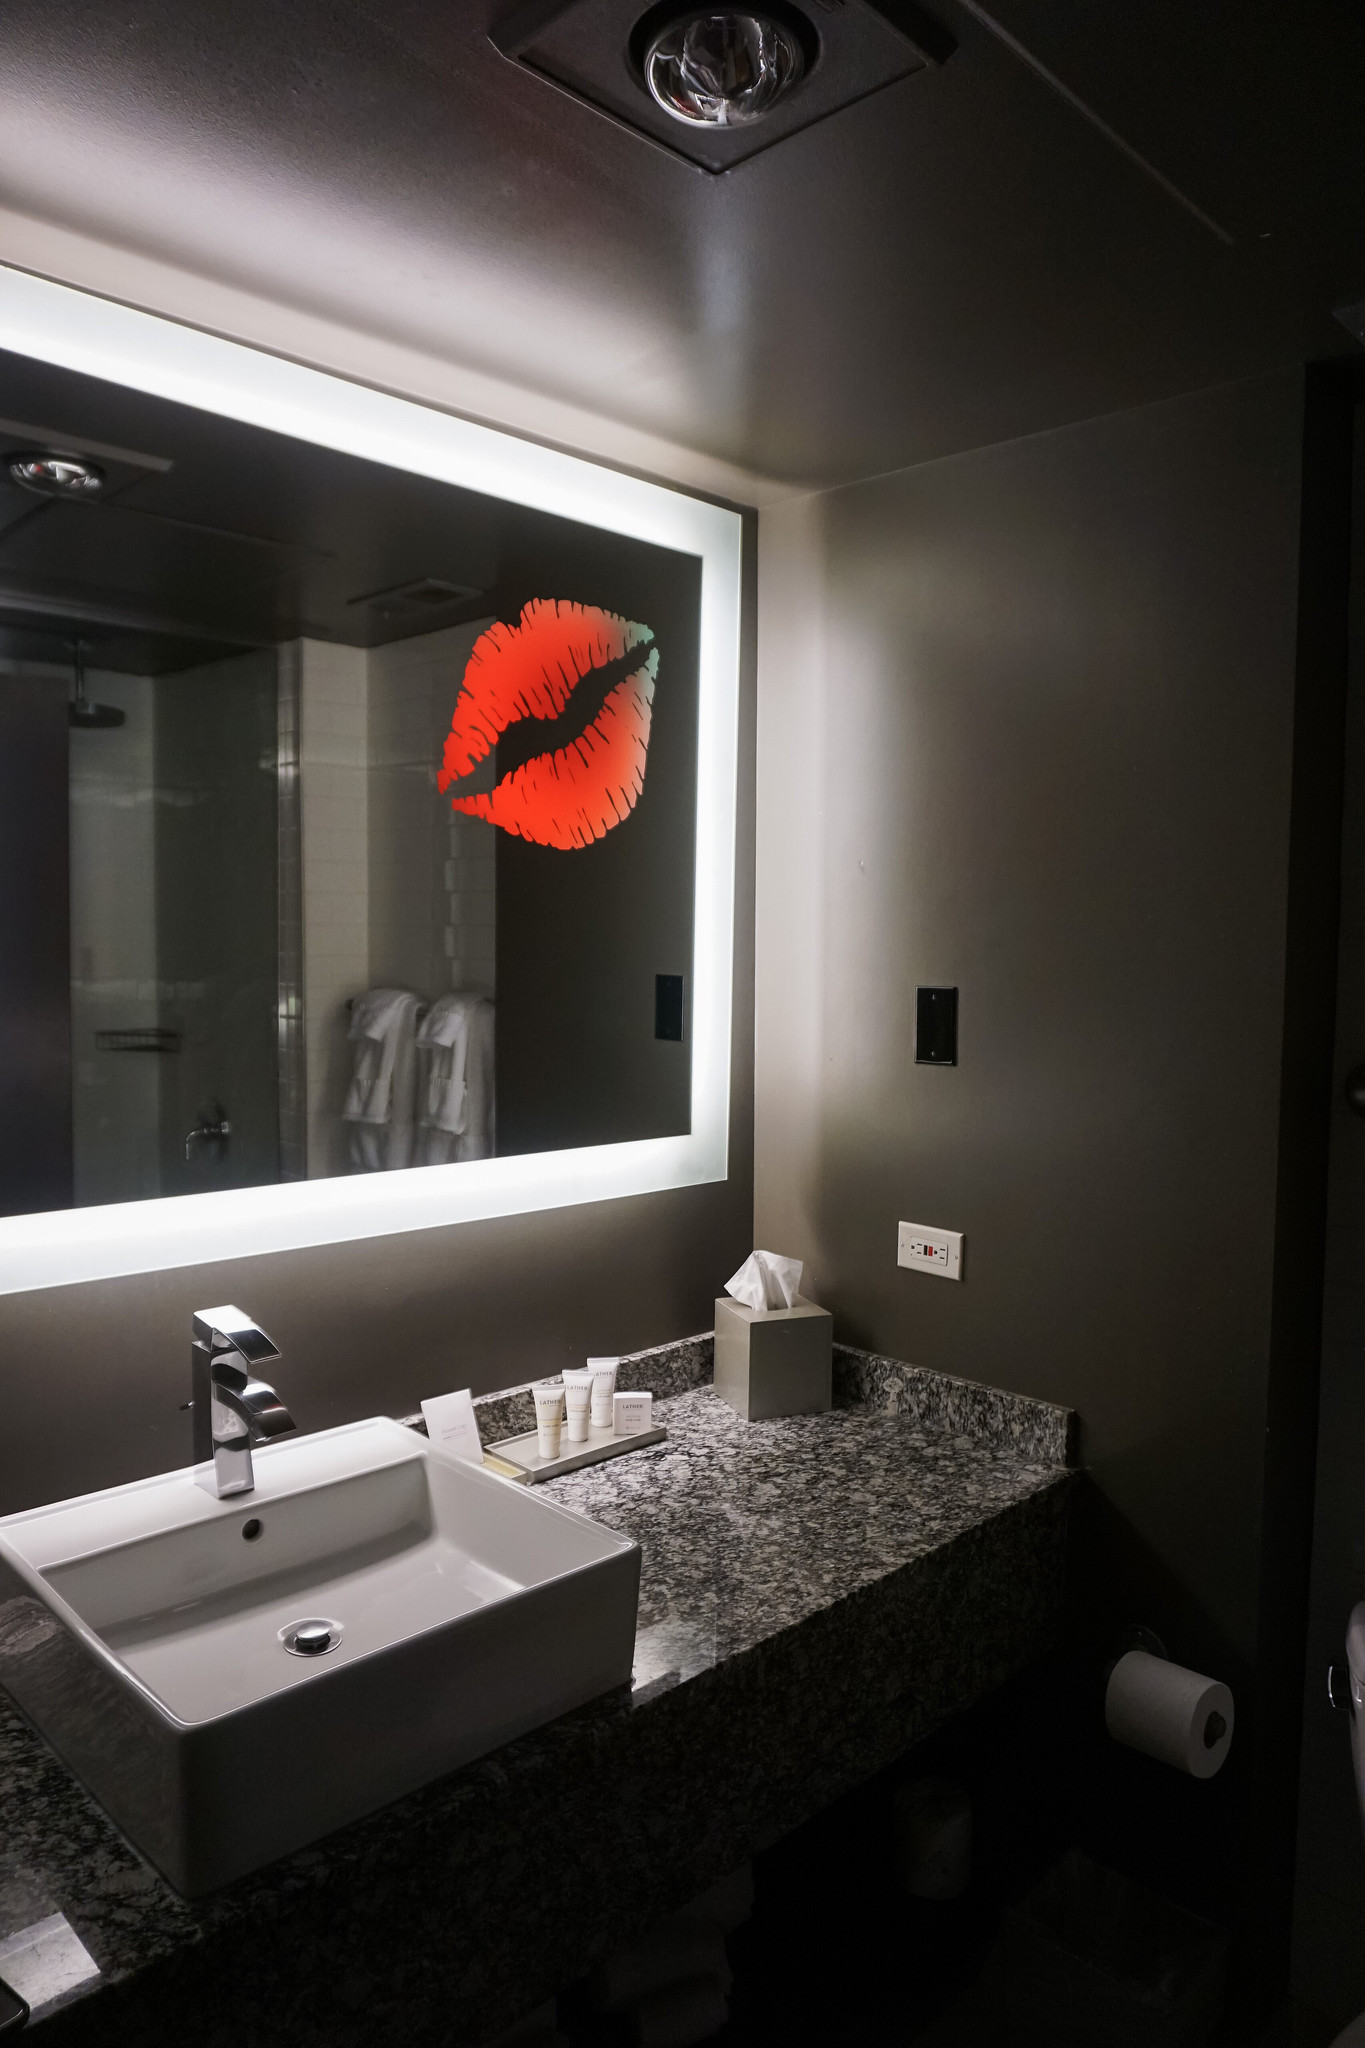 ACME Hotel King Suites